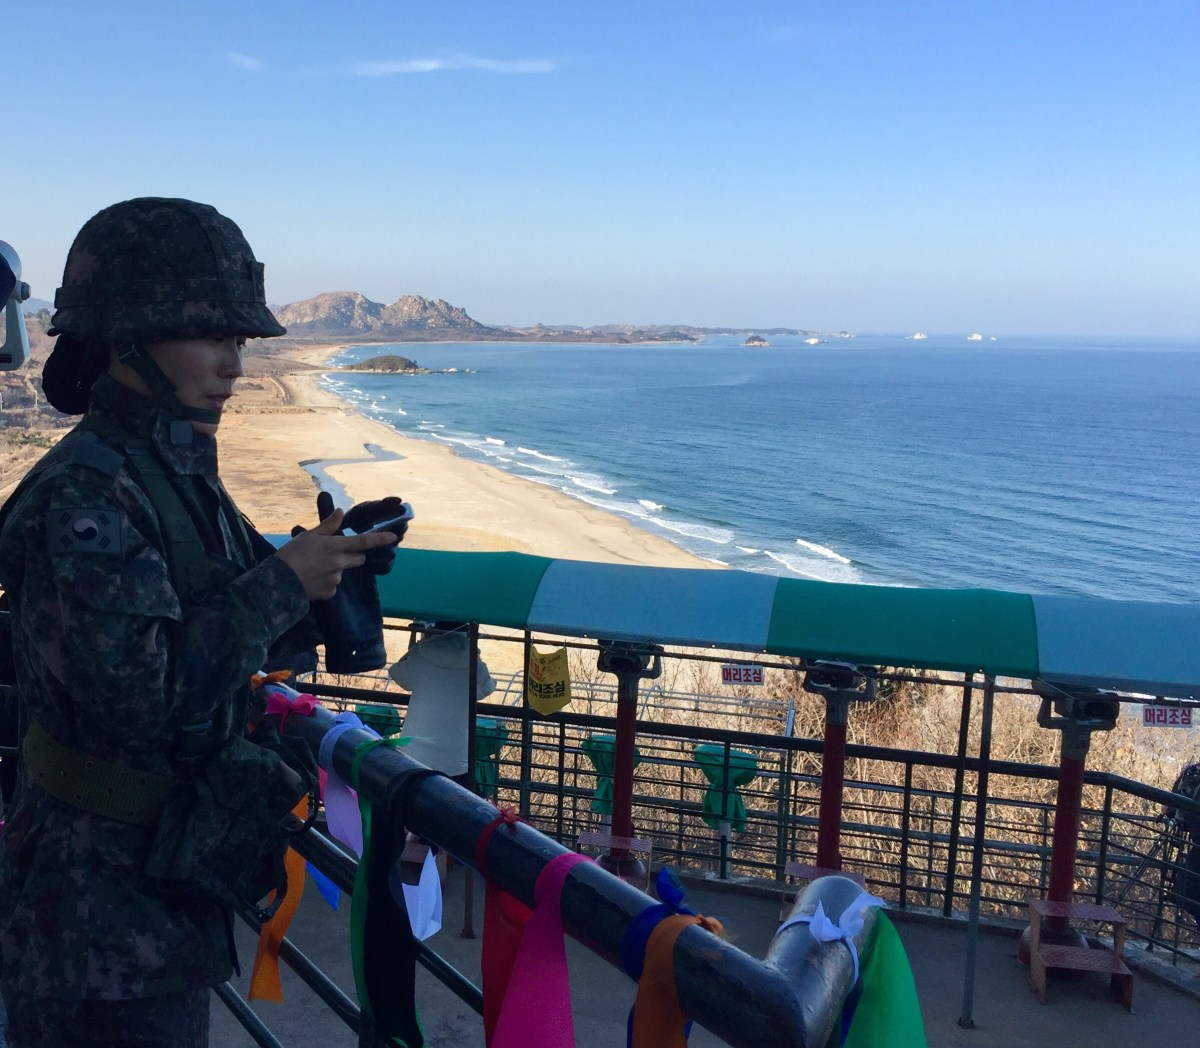 A South Korean soldier stands at an OP just south of the DMZ, with North Korea in the distance. Photo: Andrew Salmon